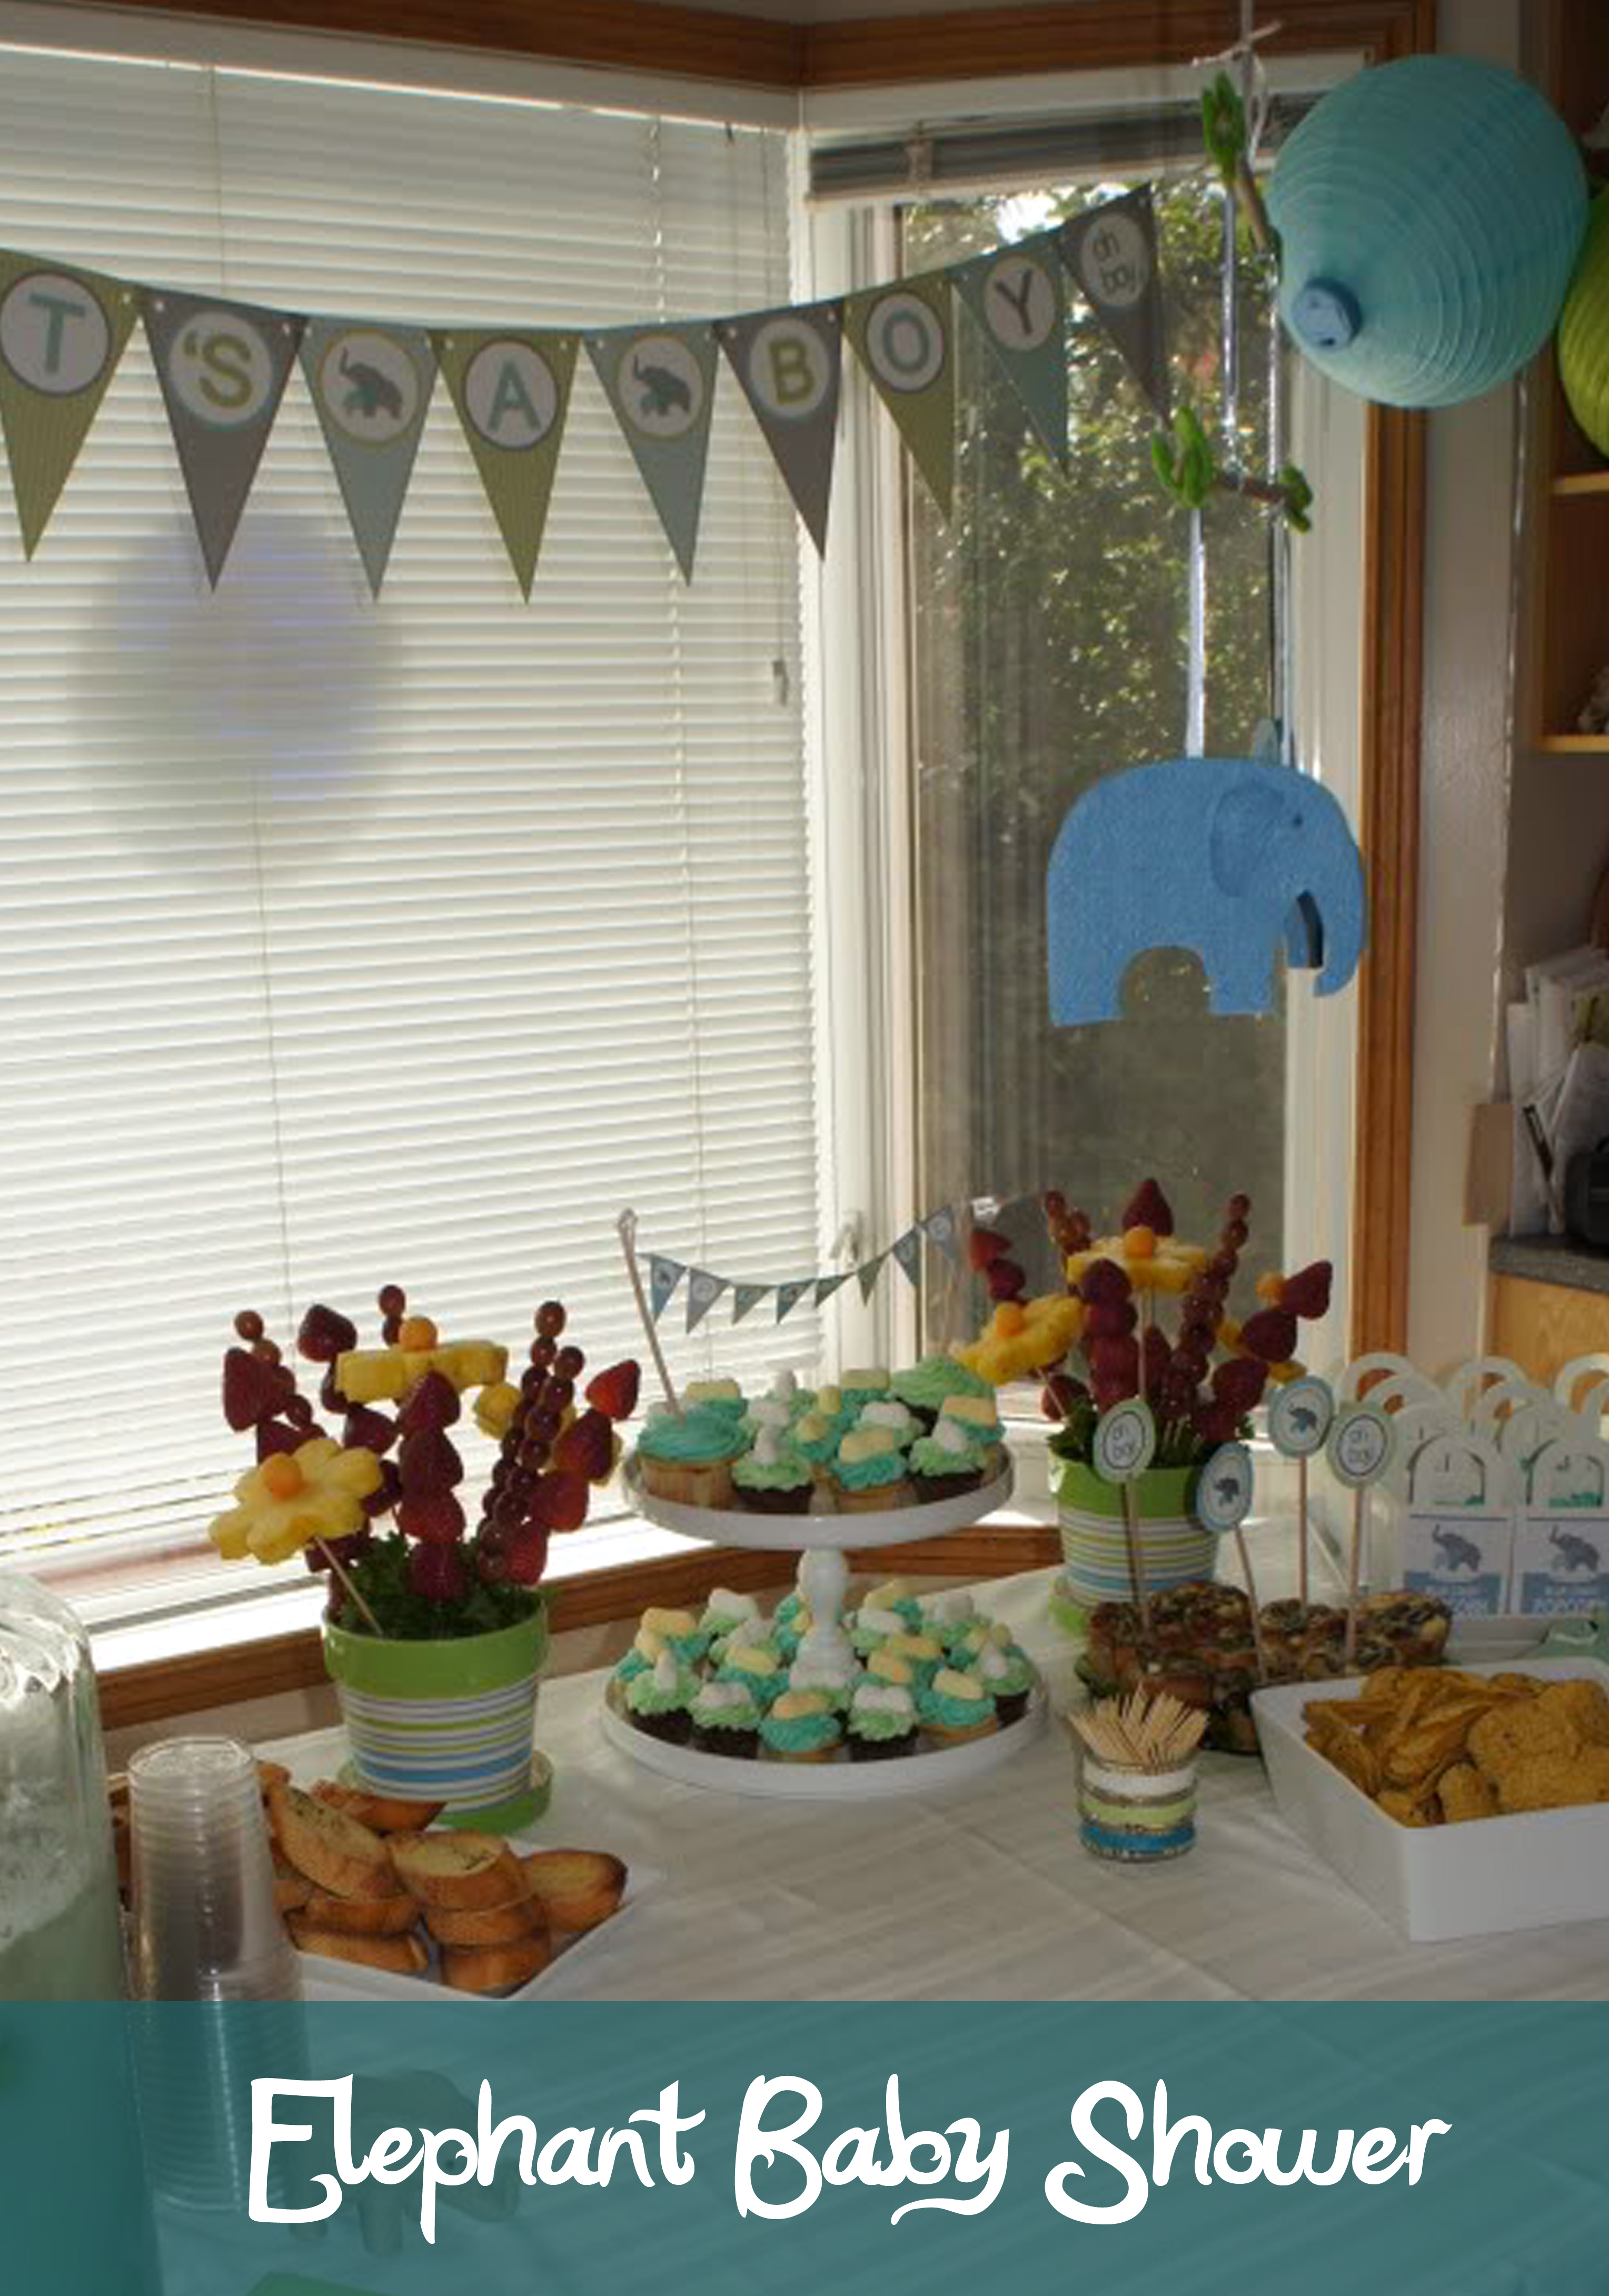 An Elephant Baby Shower